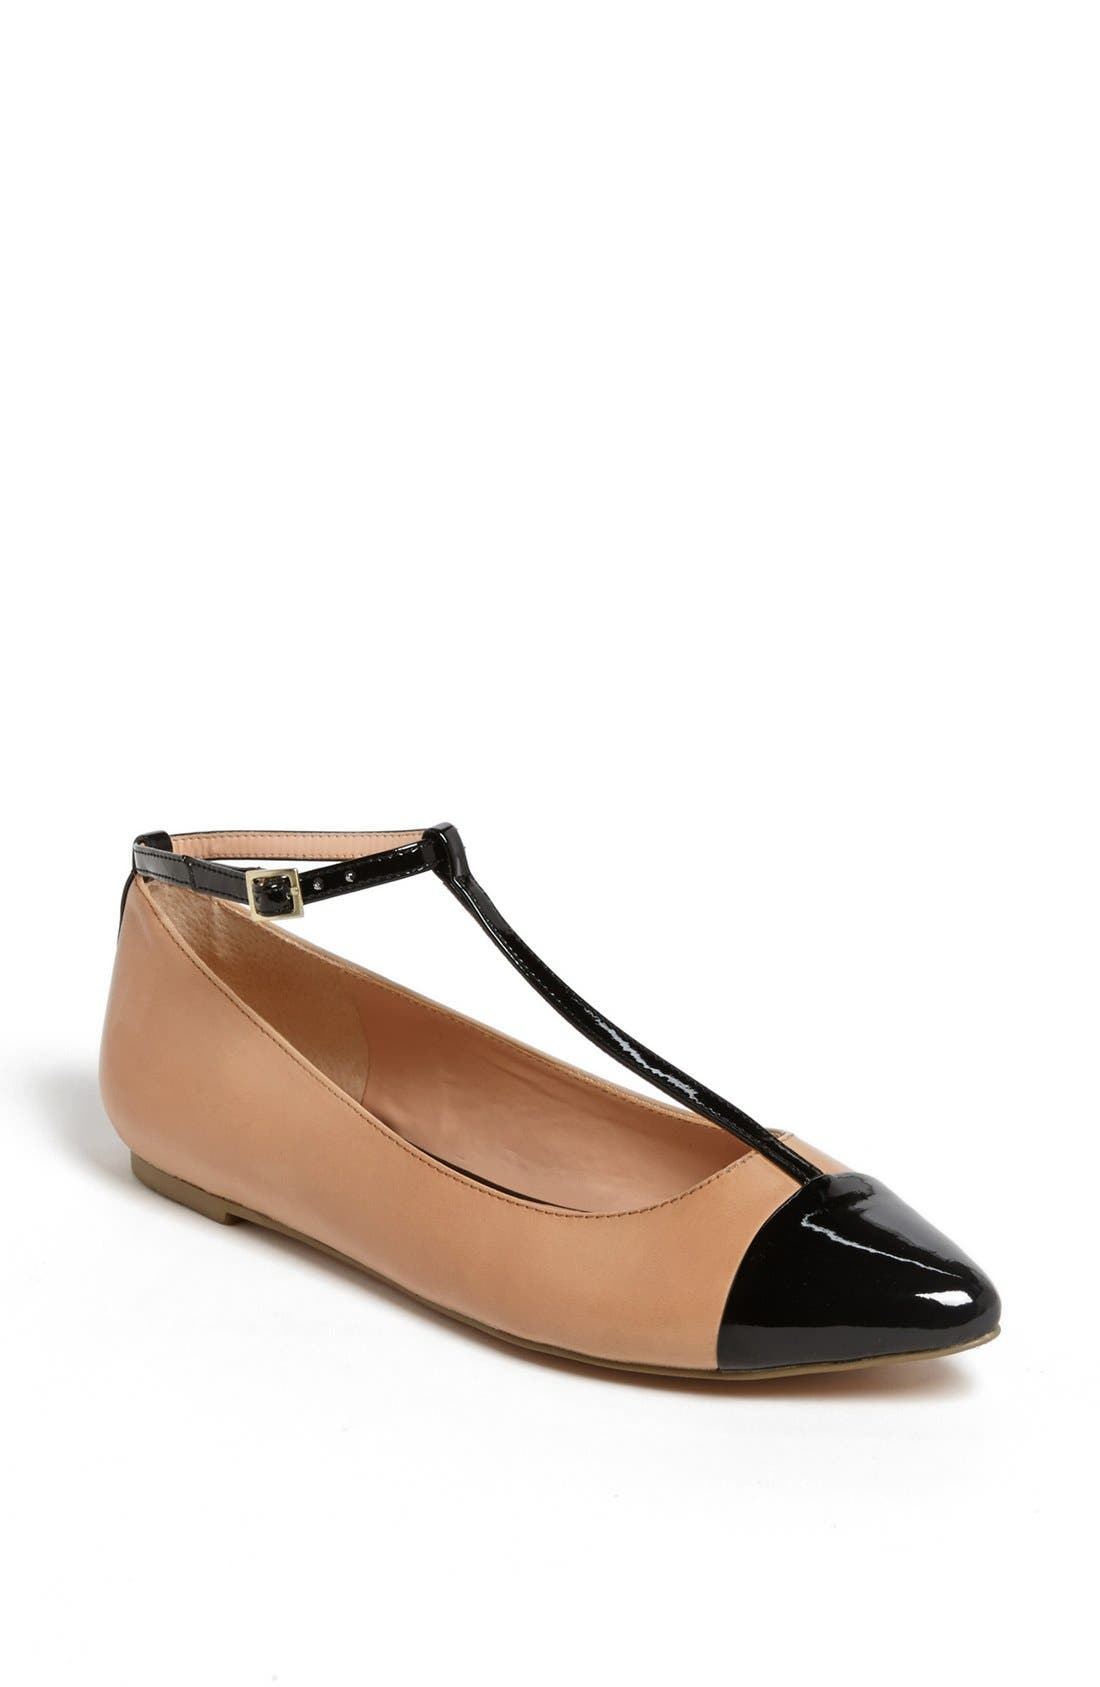 ,                             Julianne Hough for Sole Society 'Addy' Flat,                             Main thumbnail 21, color,                             251